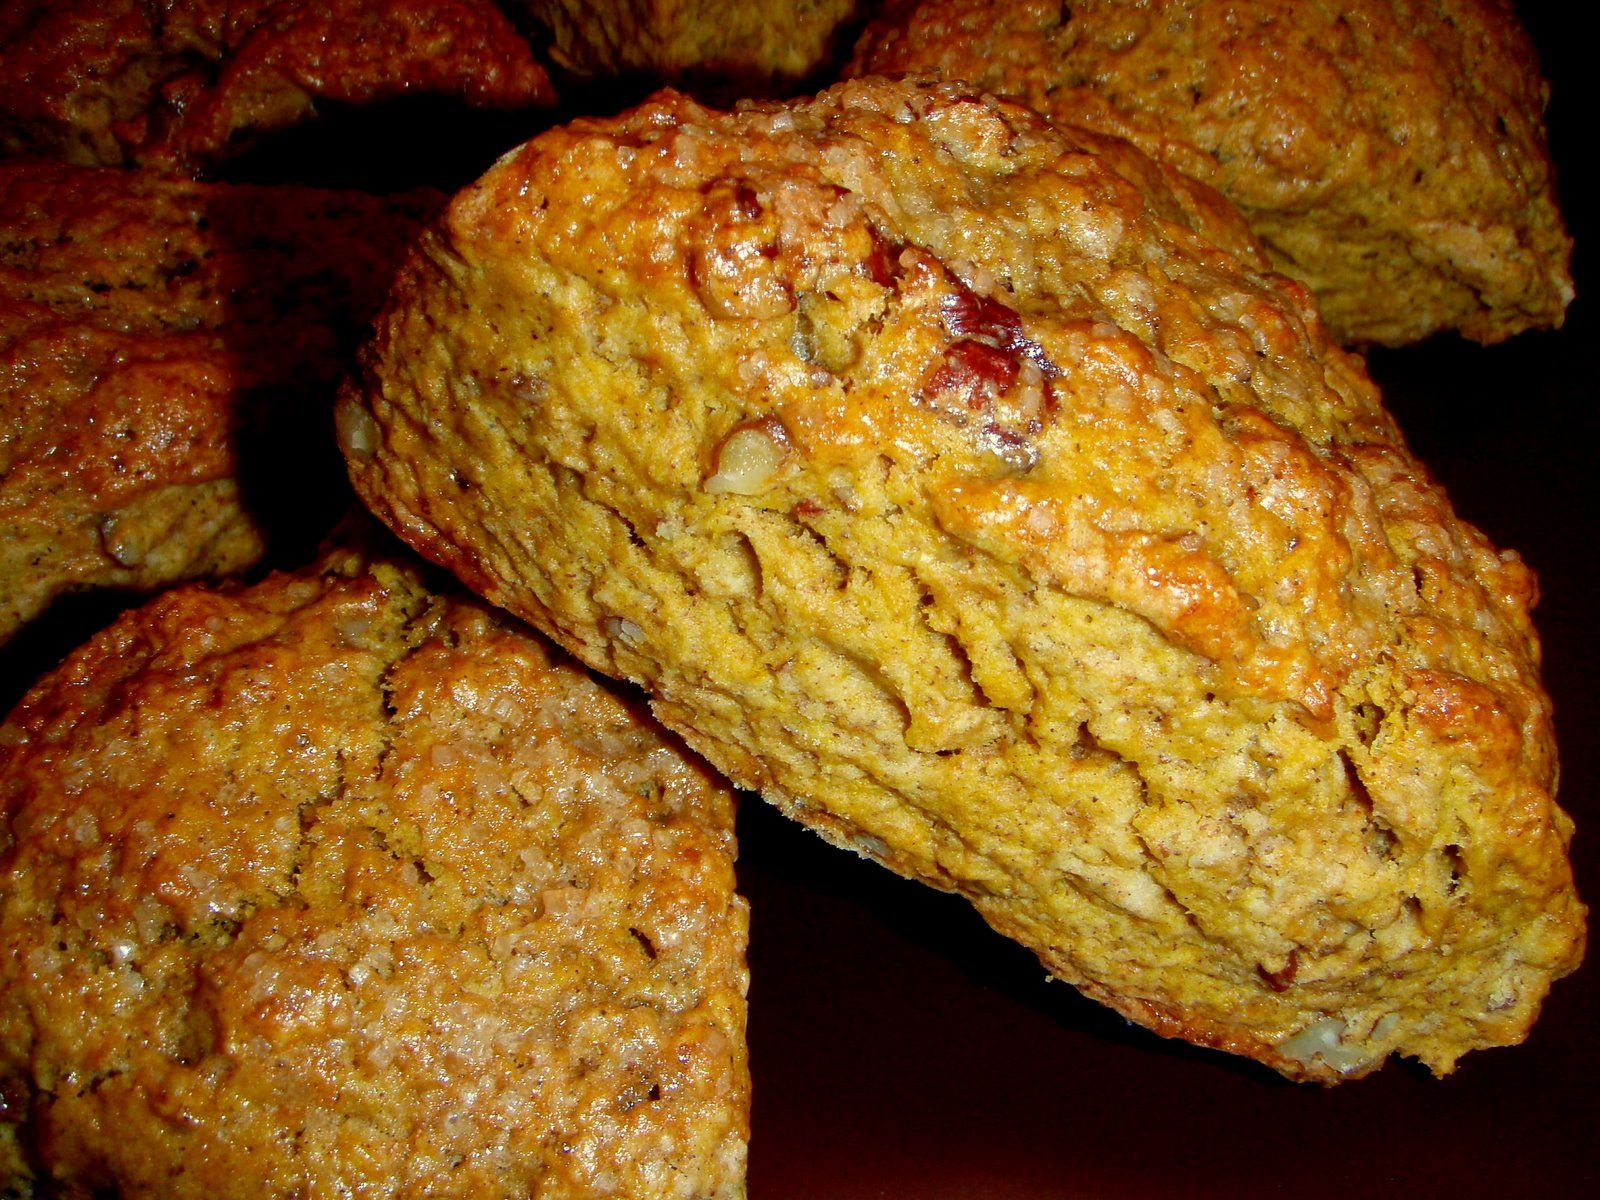 pumpkin scones (link: http://cookeatshare.com/recipes/pumpkin-scones-490941)